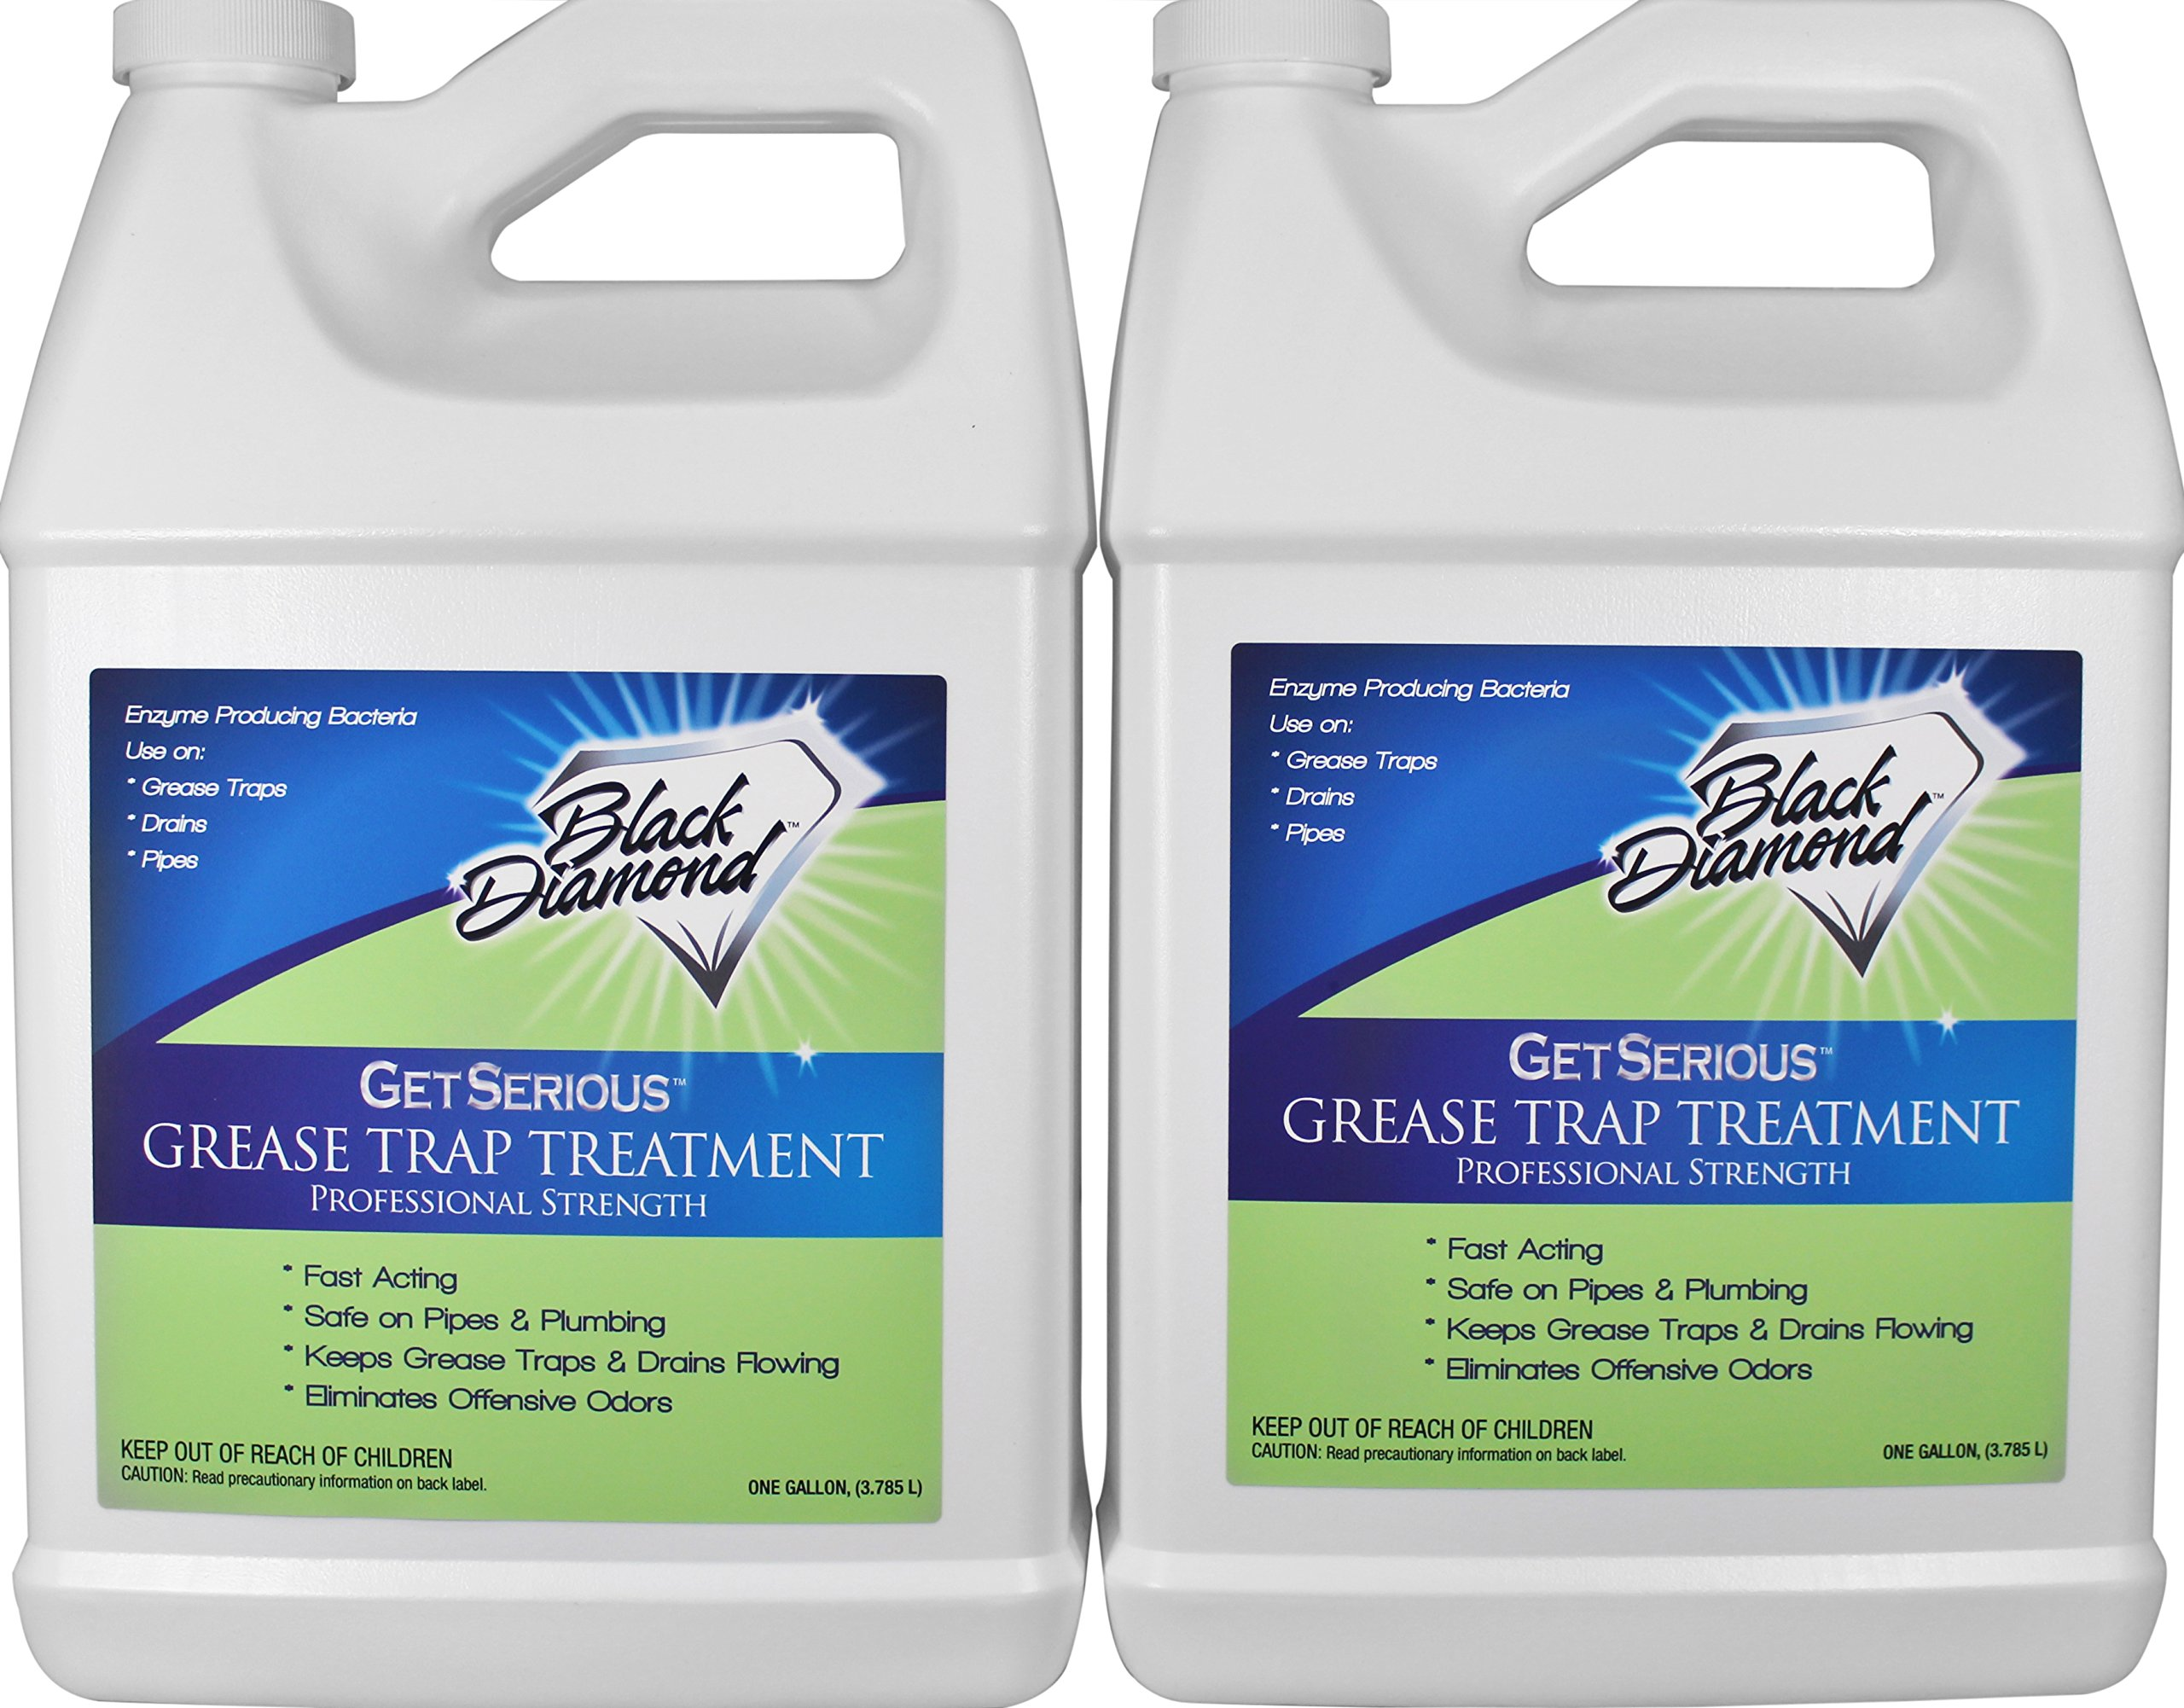 Black Diamond Stoneworks GET SERIOUS Grease Trap Treatment Commercial Enzyme Drain Opener, Cleaner, Odor Control, Trap Cleaning and Maintenance. 2 Gallons.